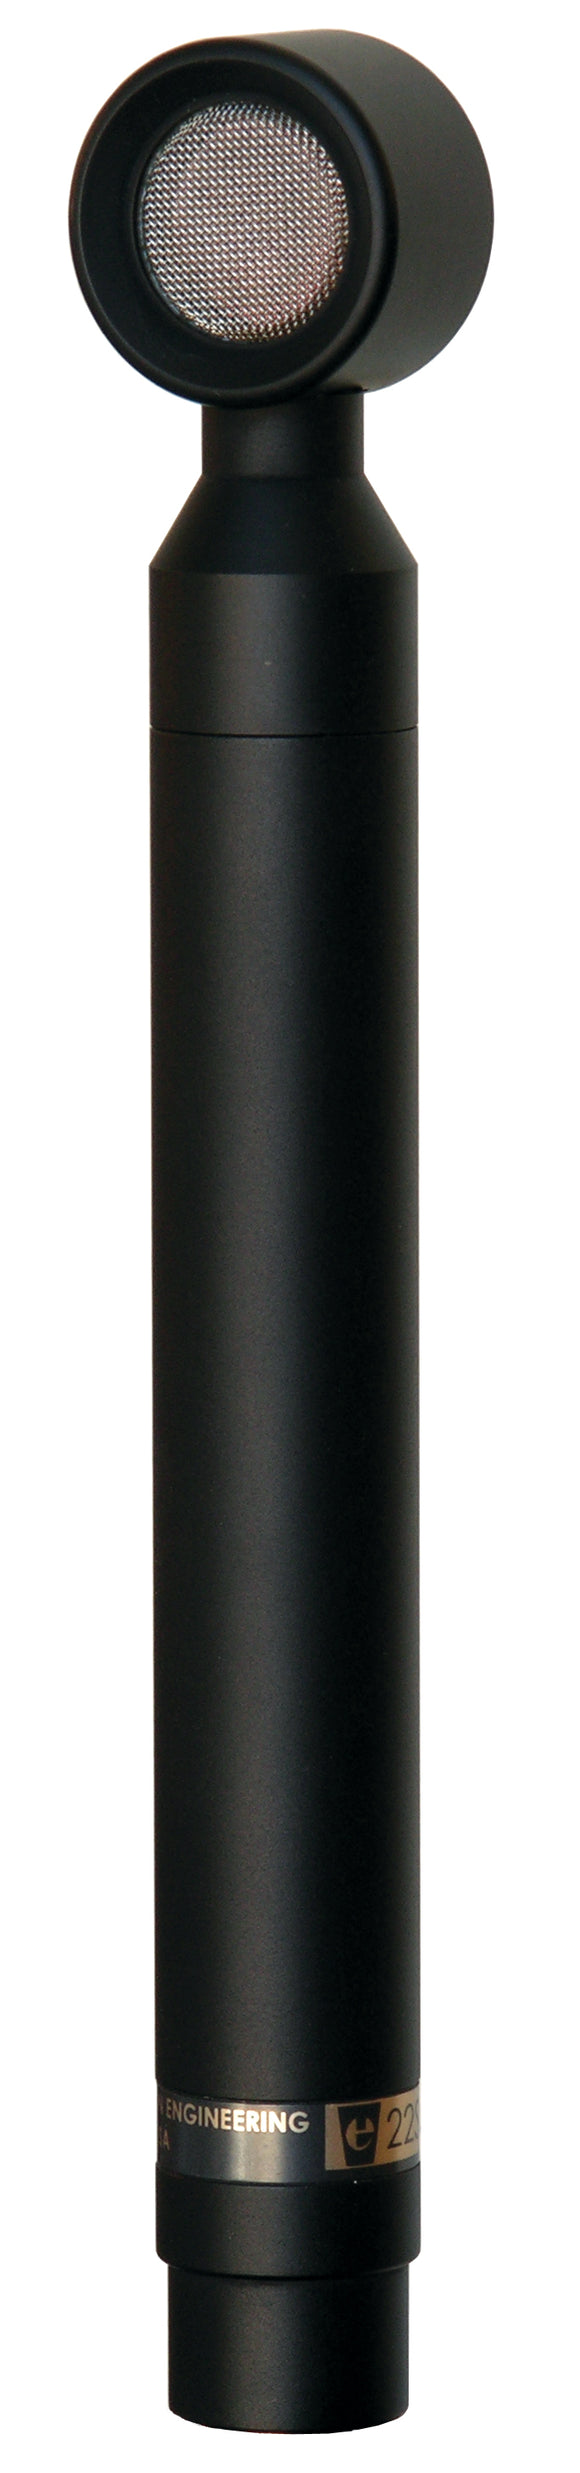 Josephson Engineering e22S side-address cardioid microphone